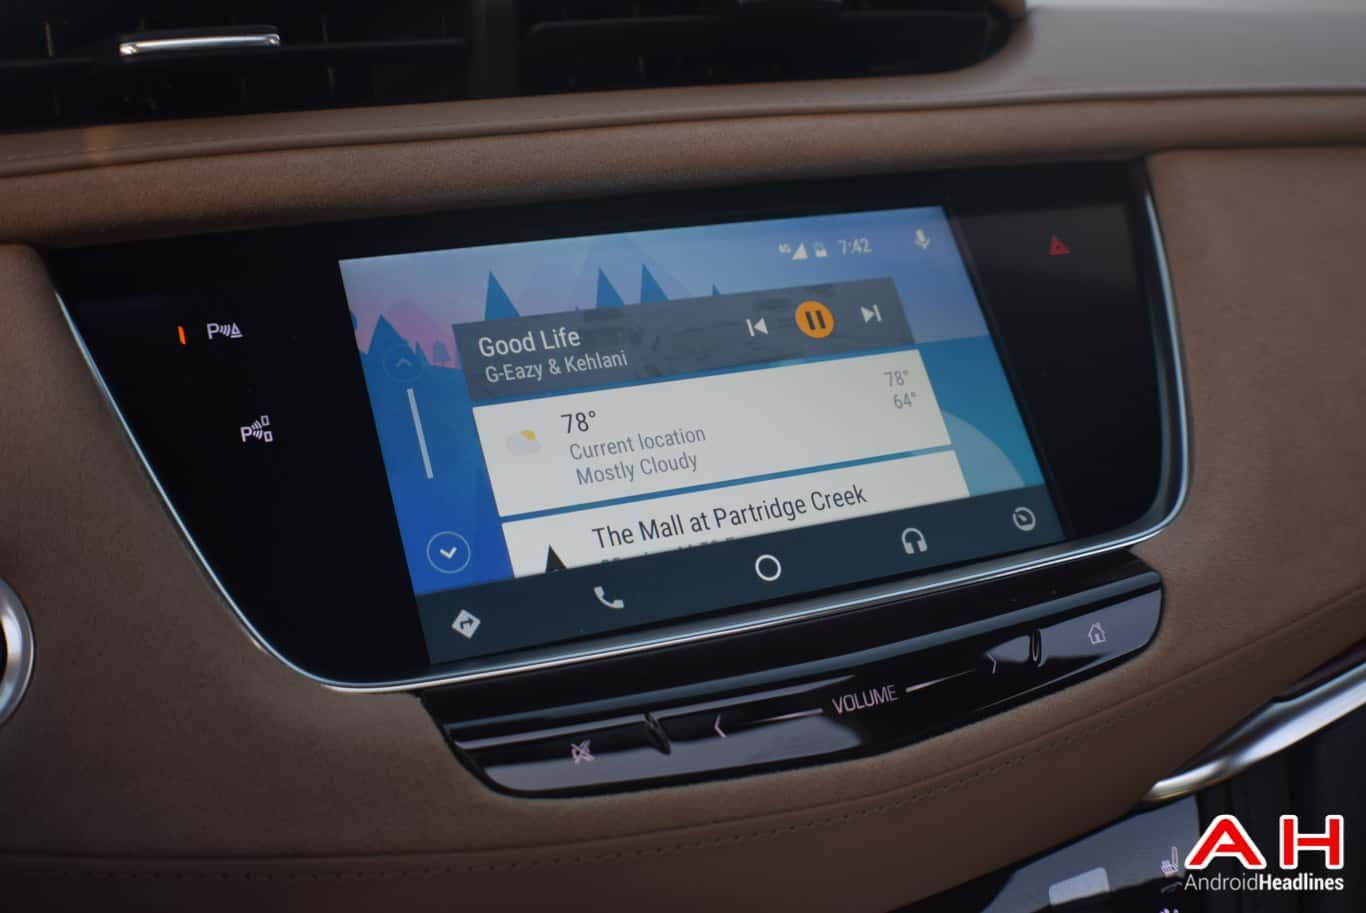 Google Adds Android Auto Support to More Alfa Romeo, Nissan